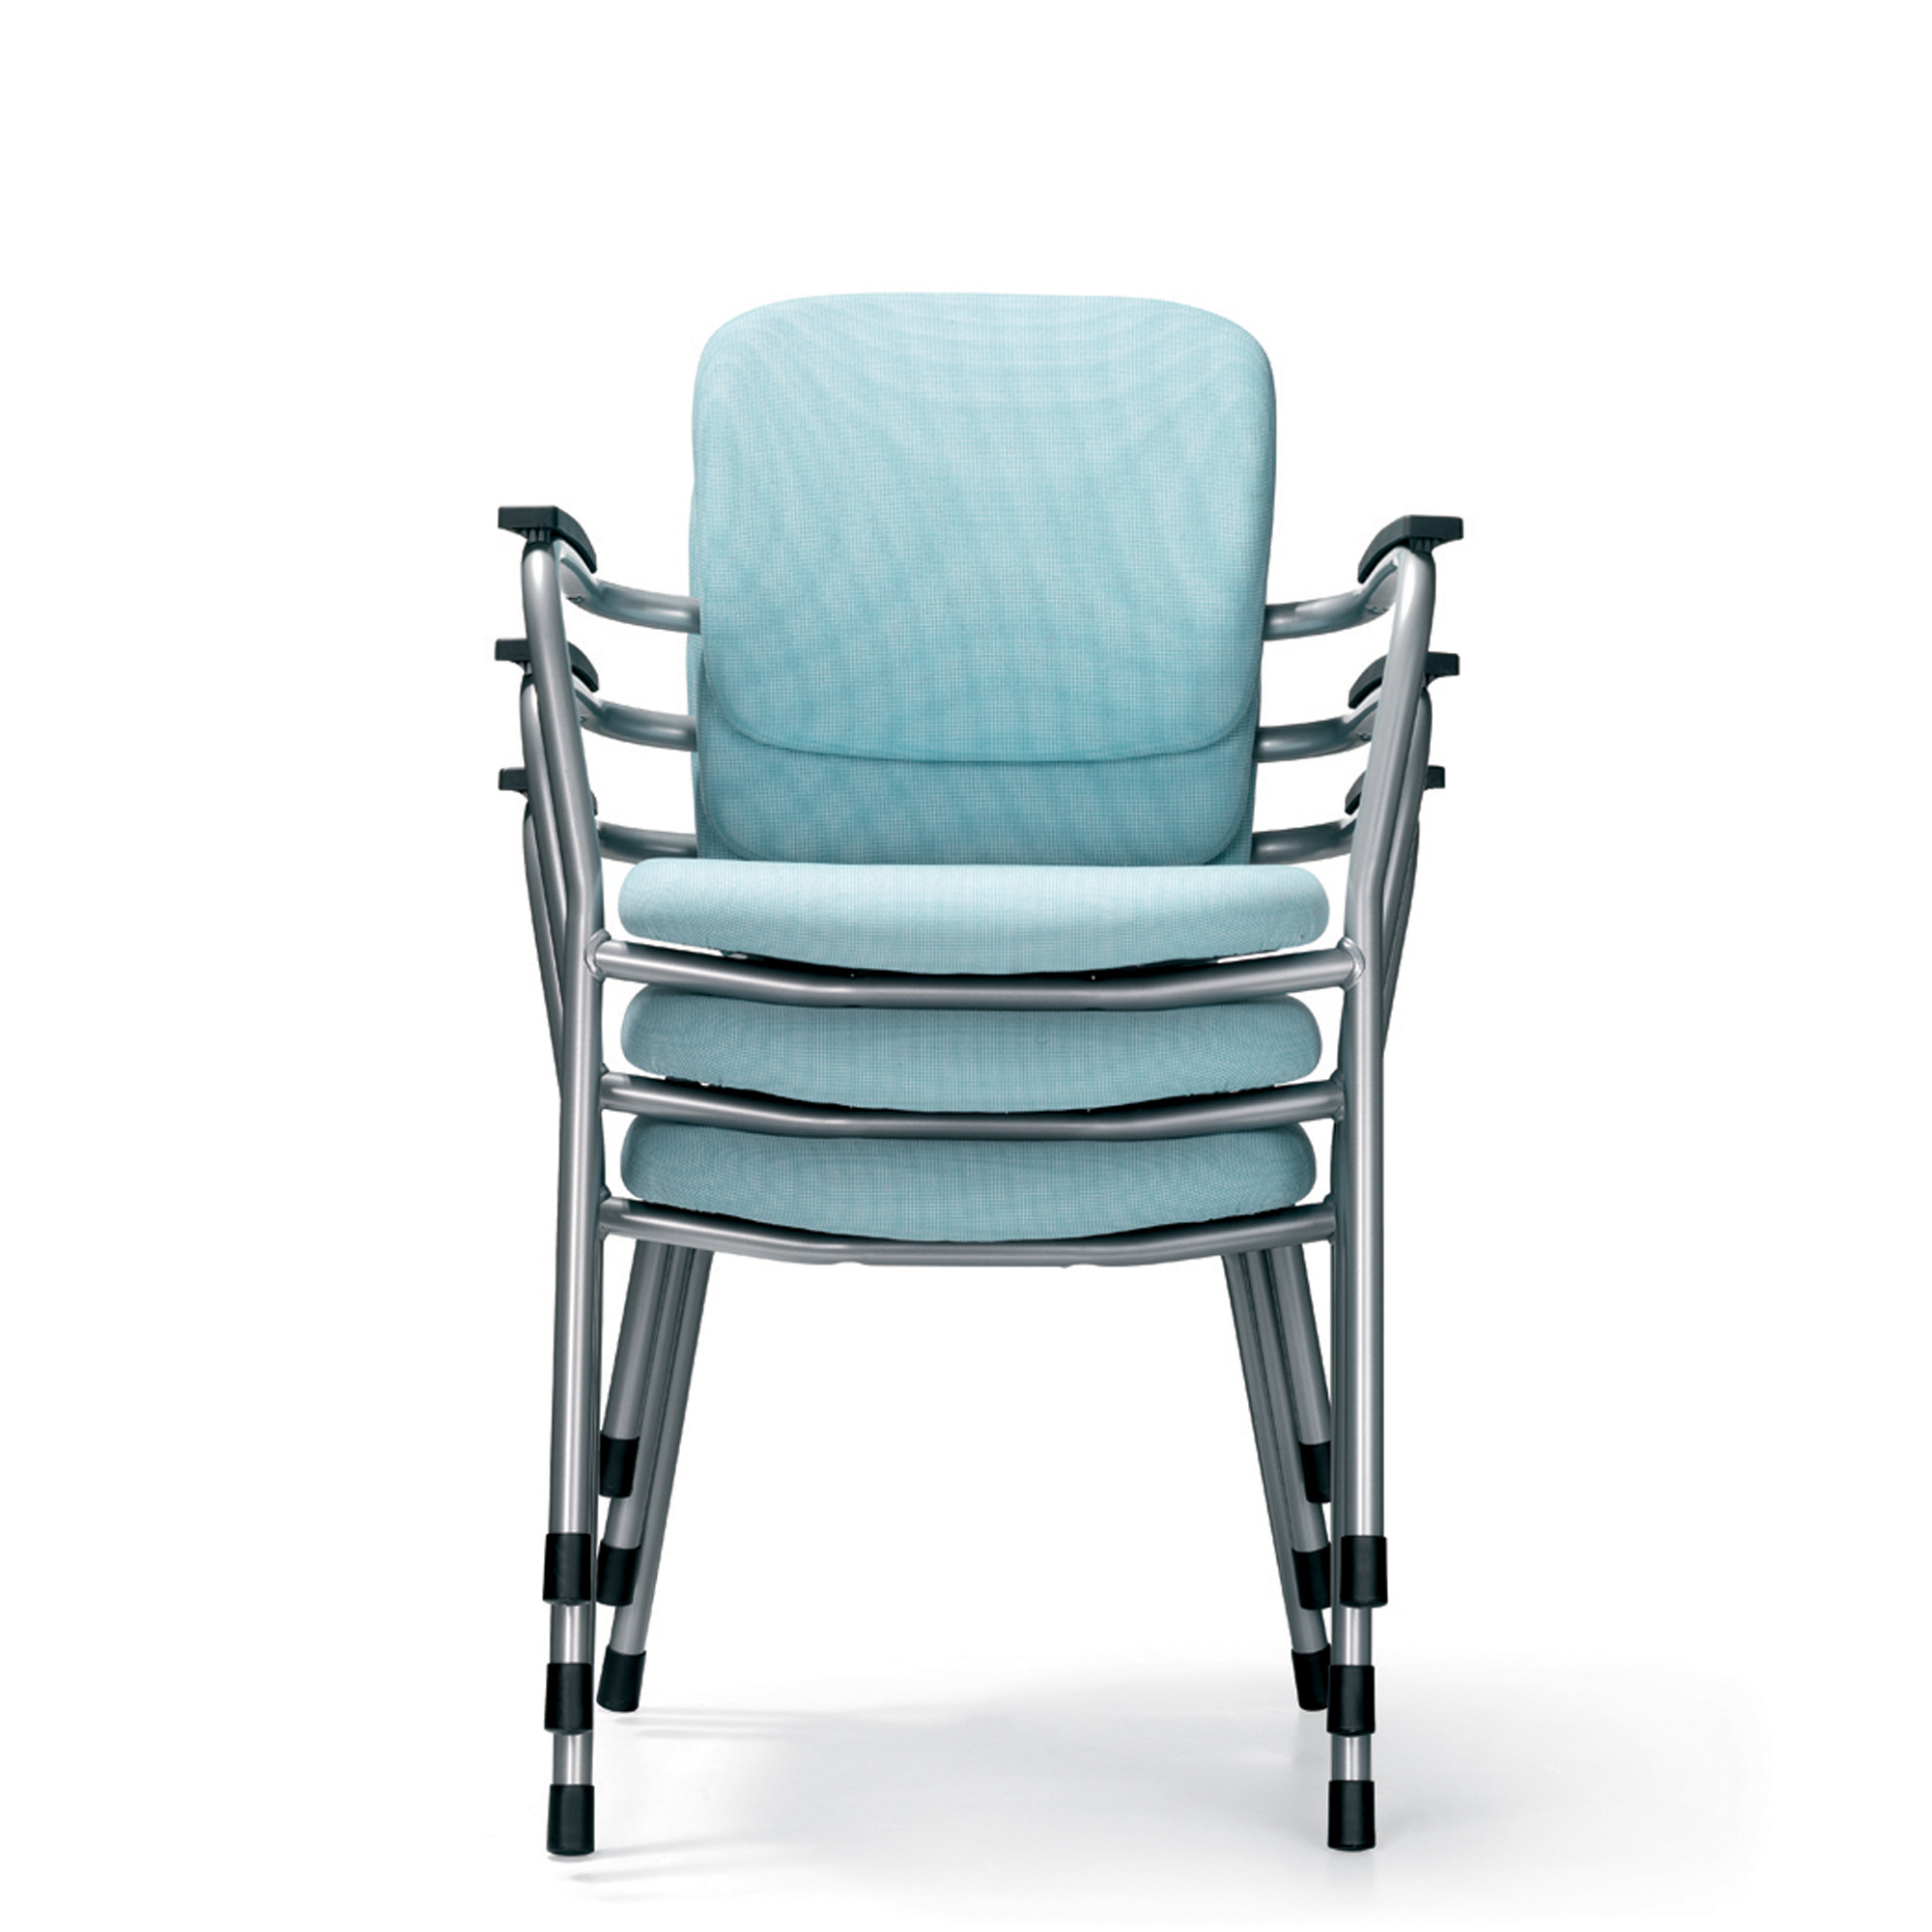 Ahrend 262 Visitors Stacking Chair